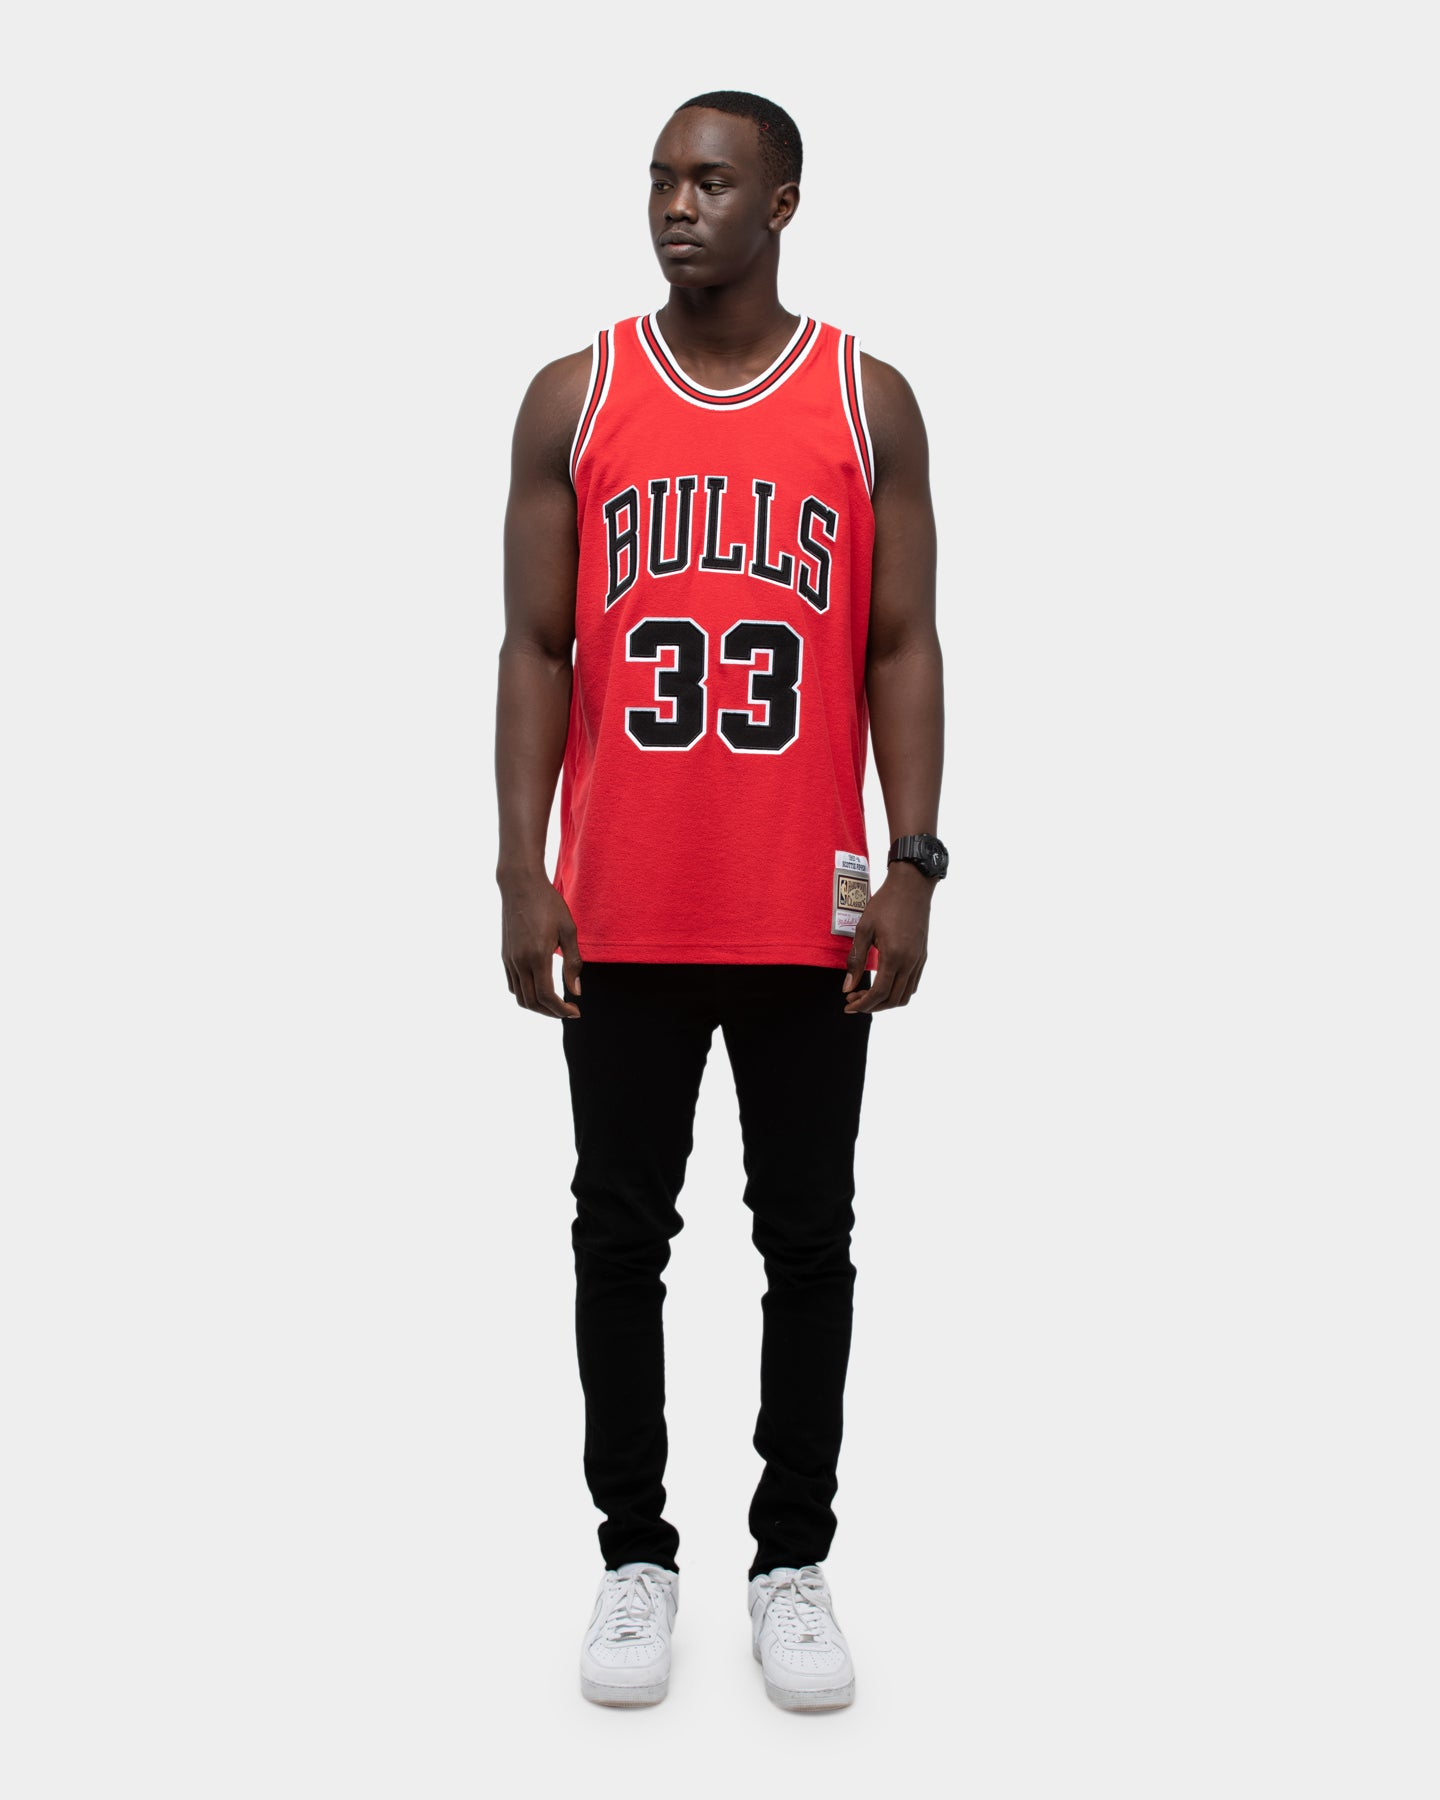 Details about Shoes Adidas Chicago Bulls Black Red Original NBA